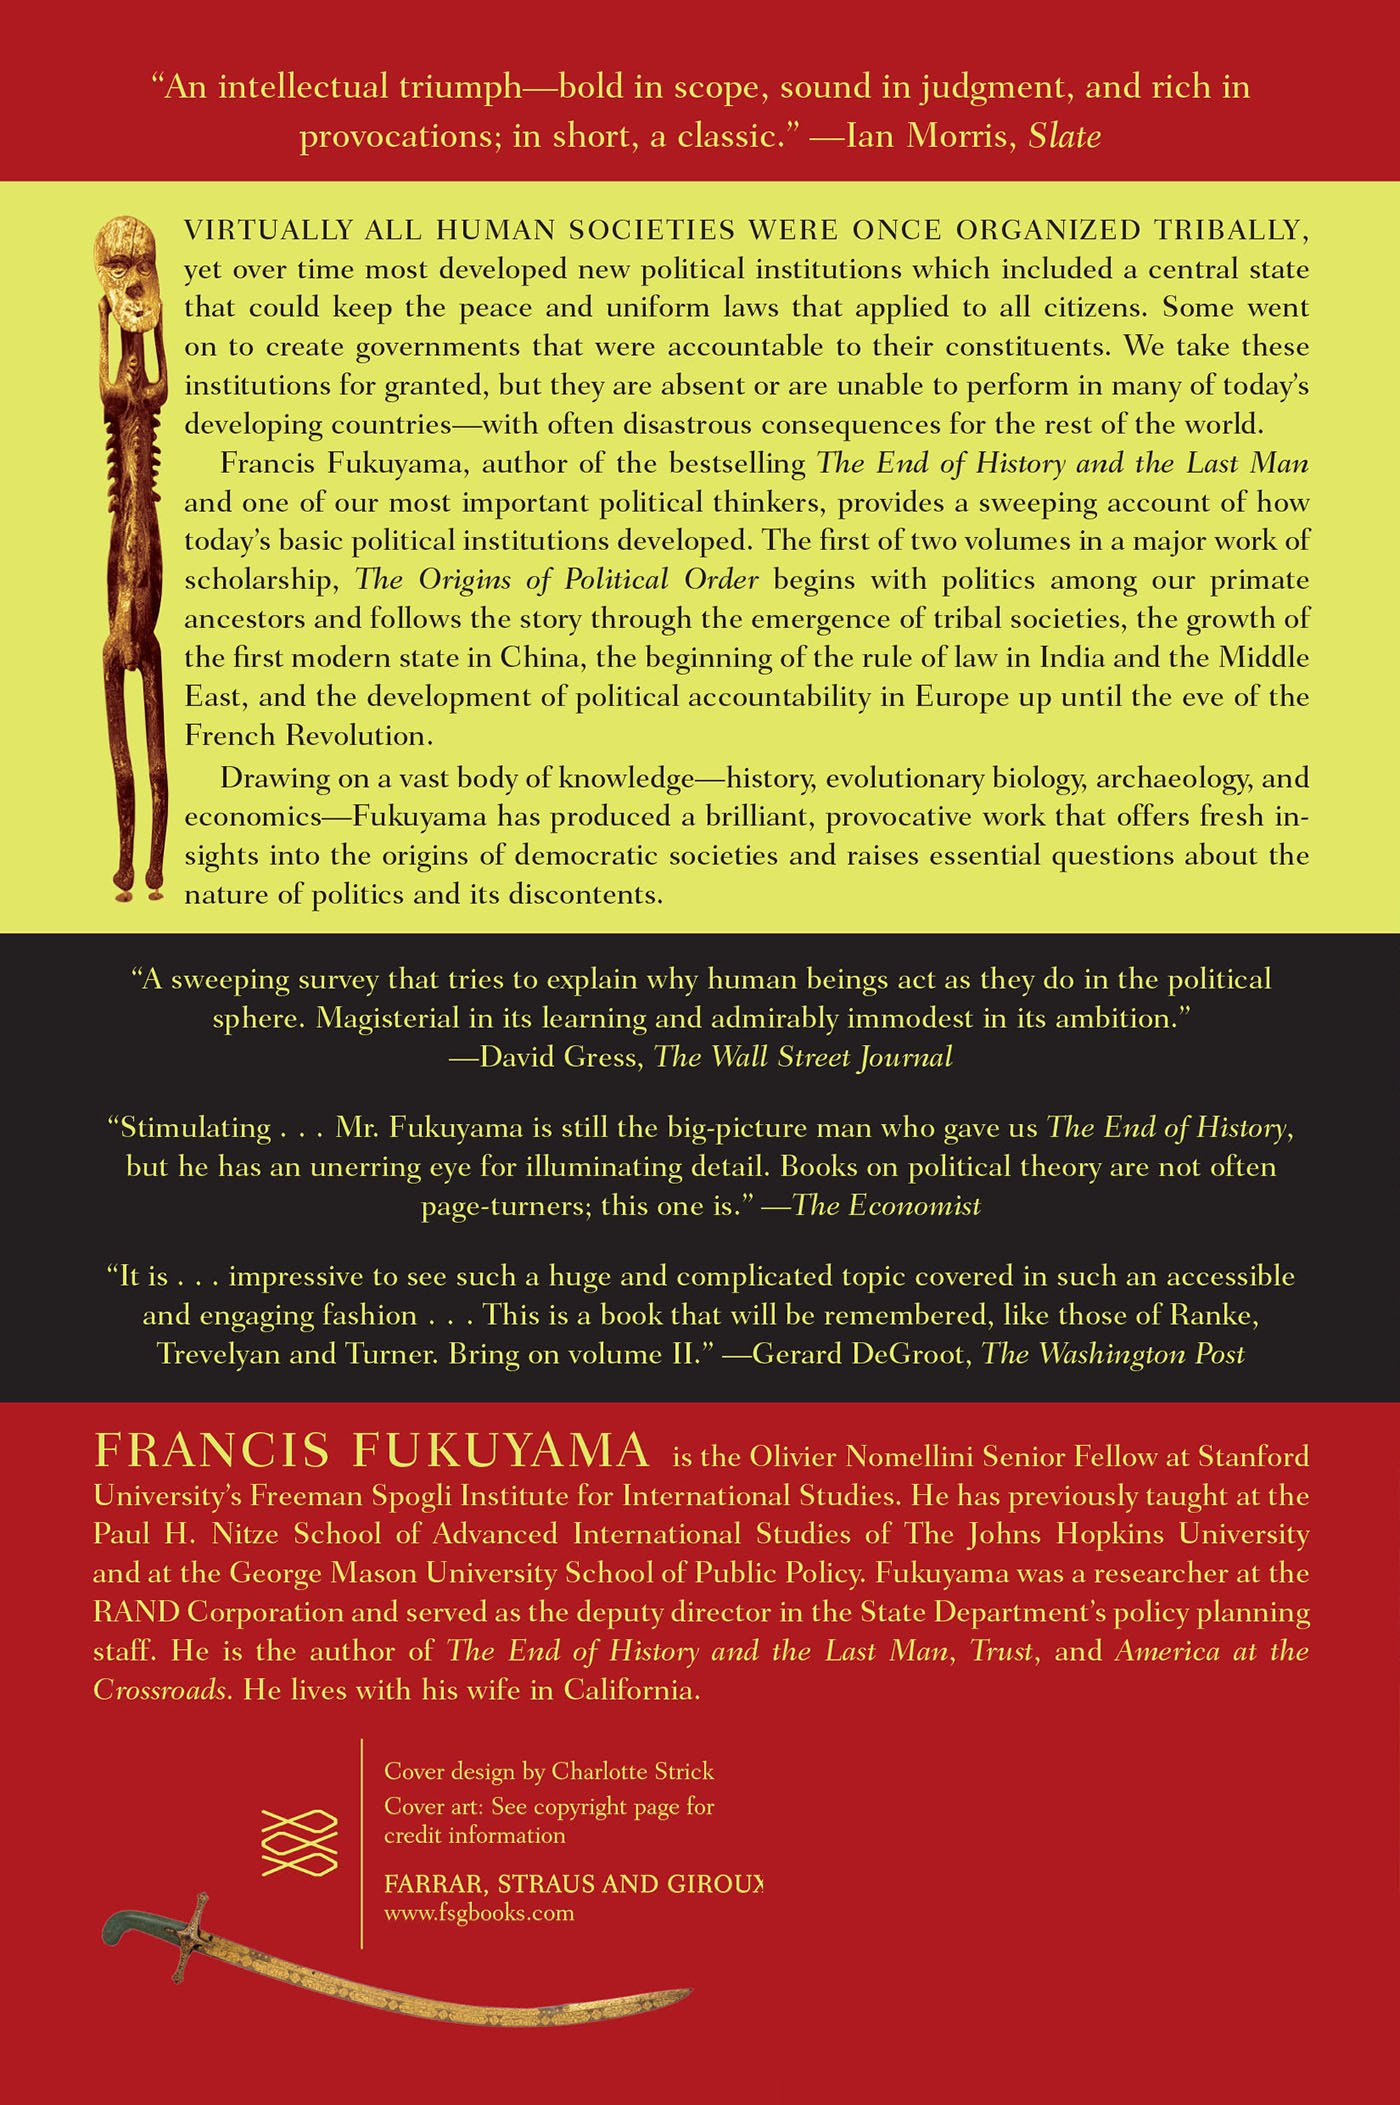 The Origins of Political Order: From Prehuman Times to the French  Revolution: Francis Fukuyama: 9780374533229: Amazon.com: Books